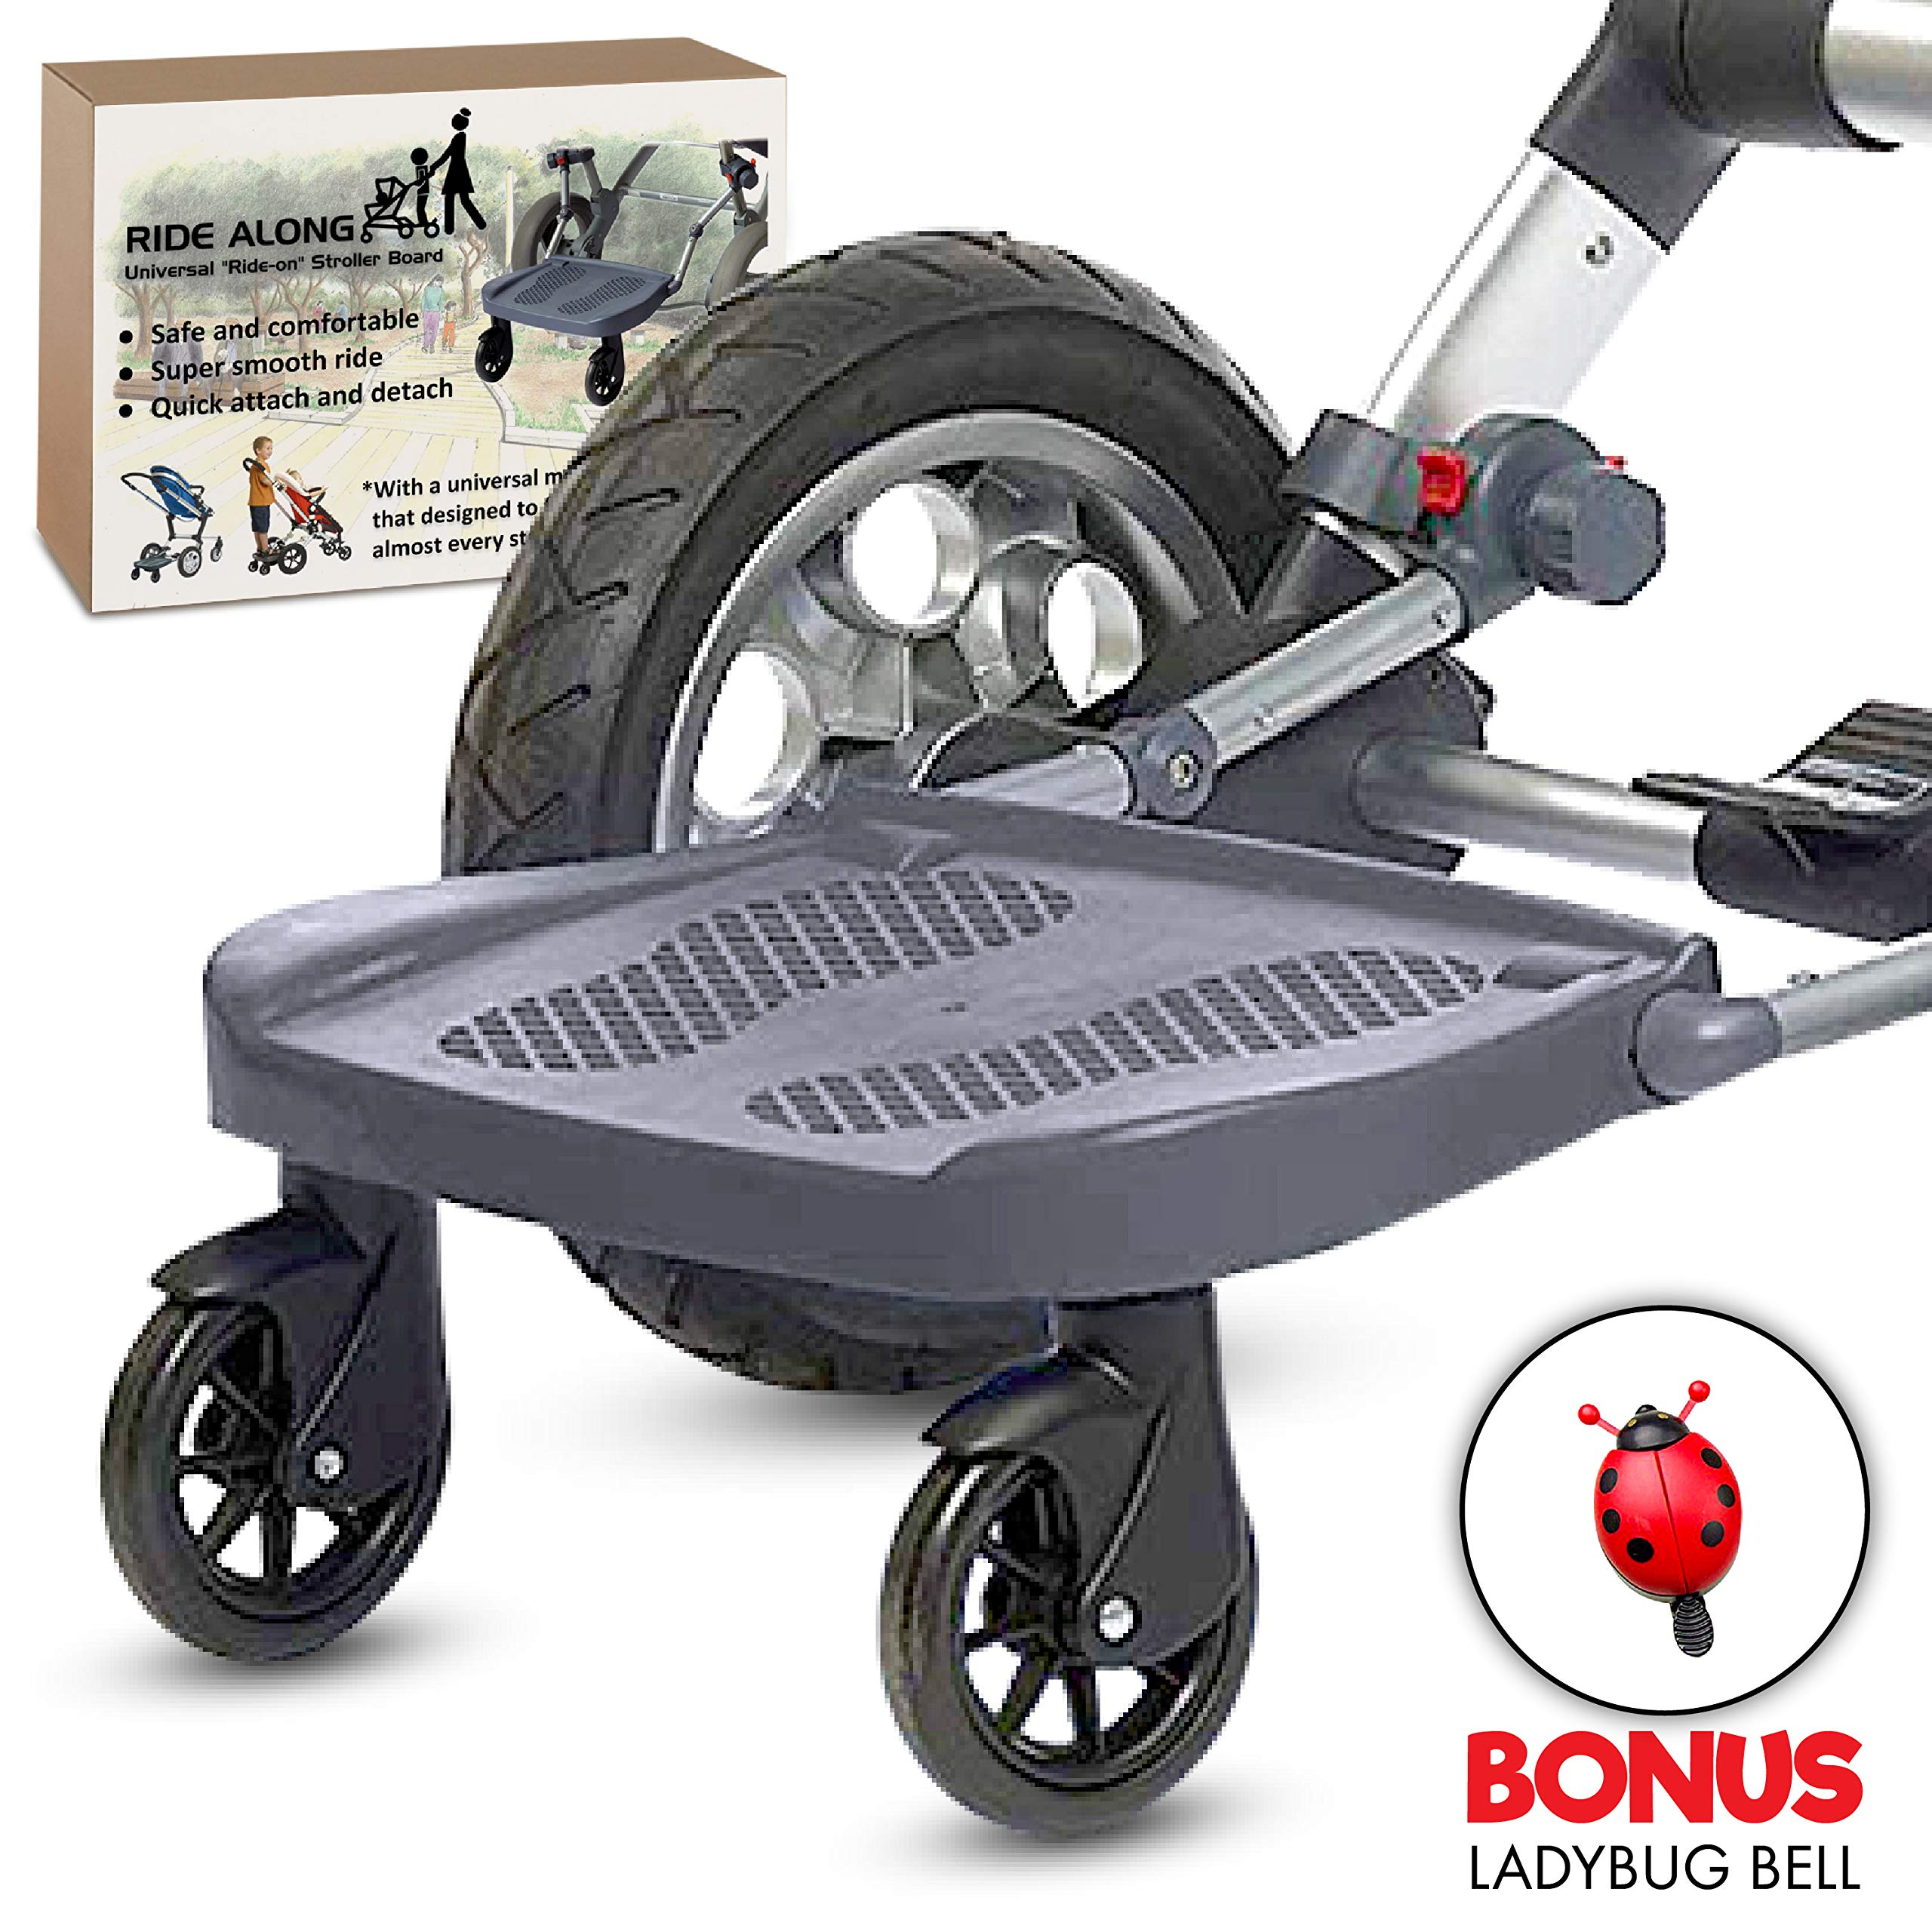 Ride Along - Universal Mount Ride-On Stroller Board Toddler Bump-Free Anti-Slip Buggy Stand by EZ step (Image #9)